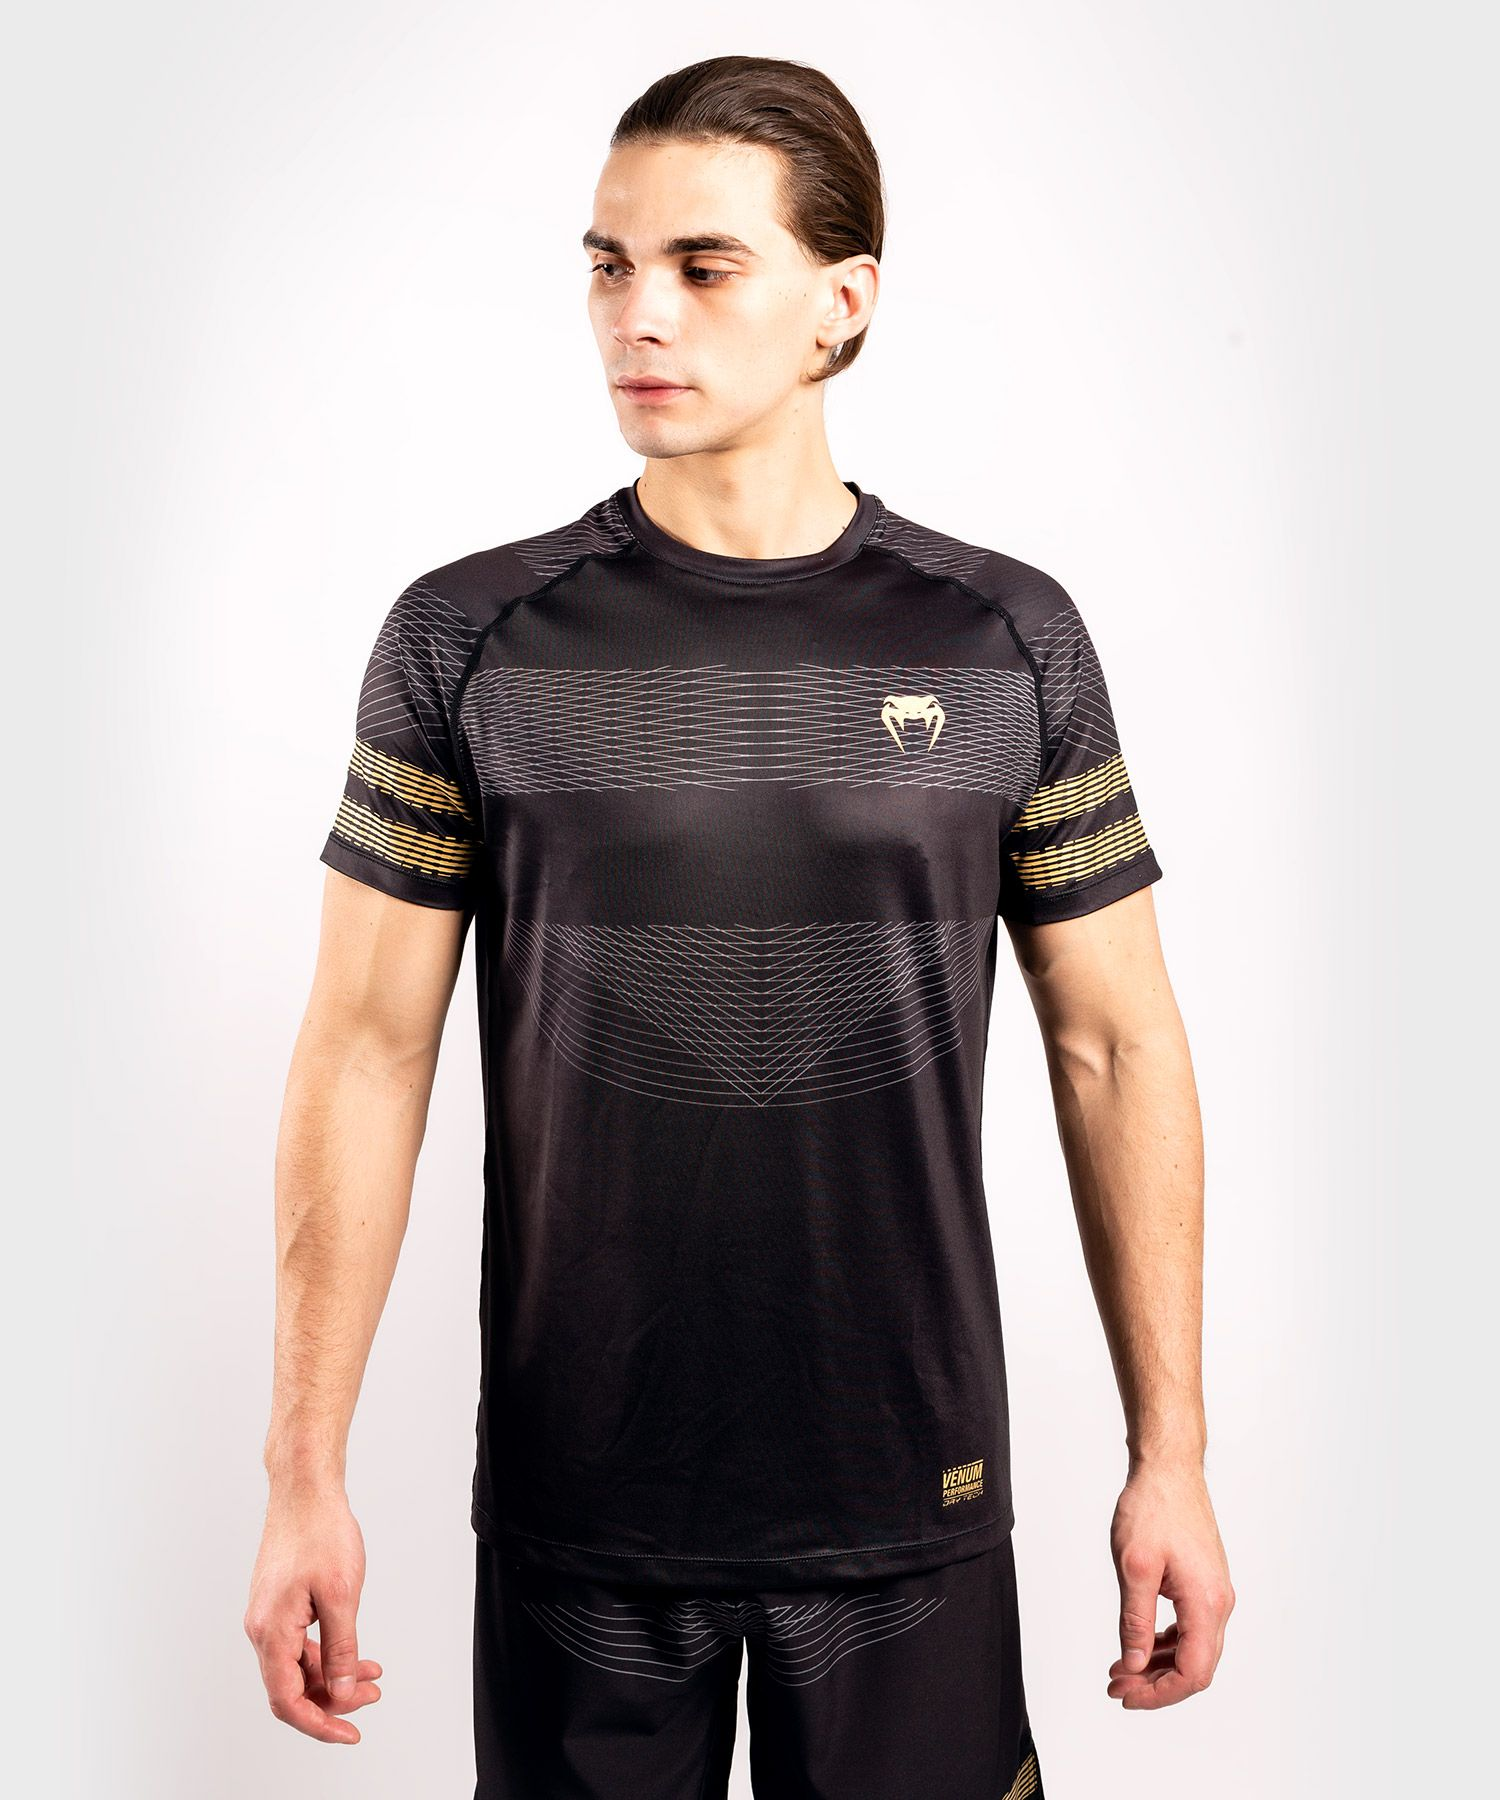 Venum Club 182 Dry Tech T-Shirt - Schwarz/Gold